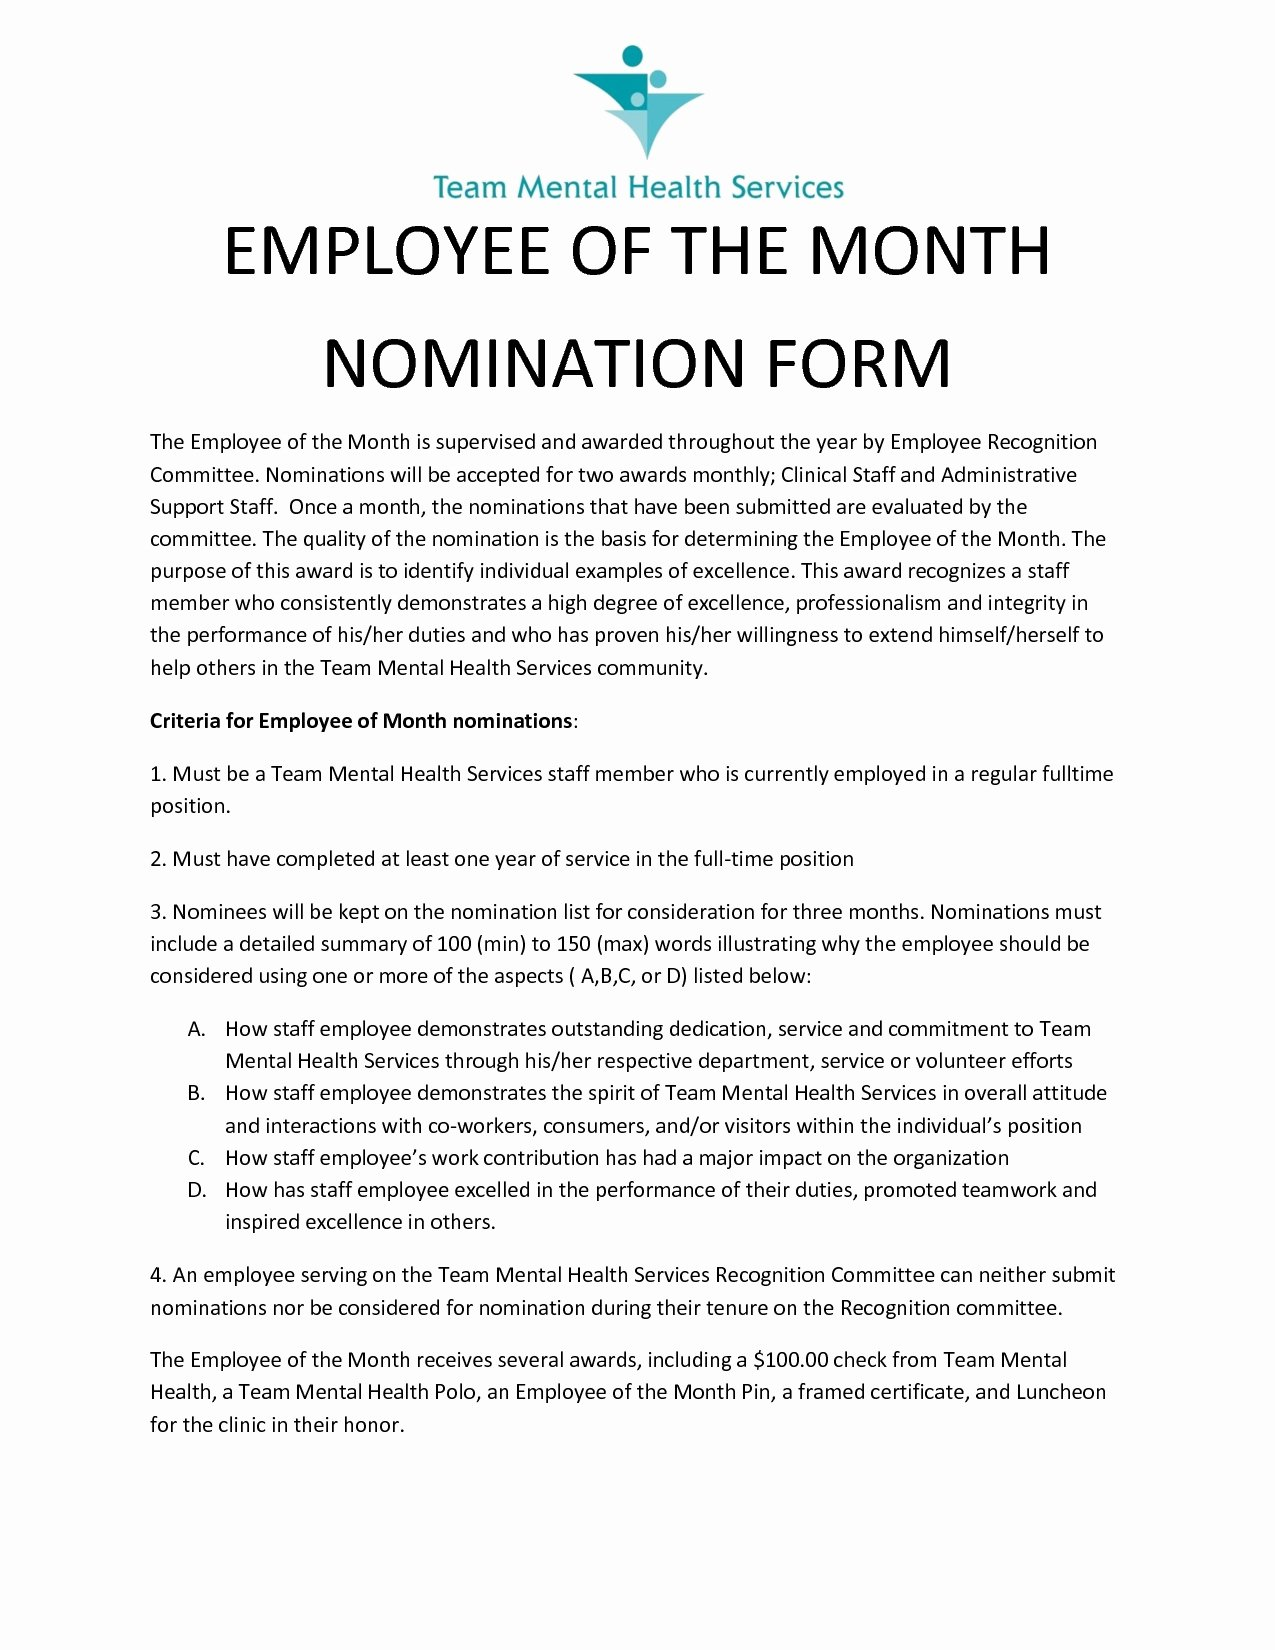 Employee Employee the Month Nomination form Design